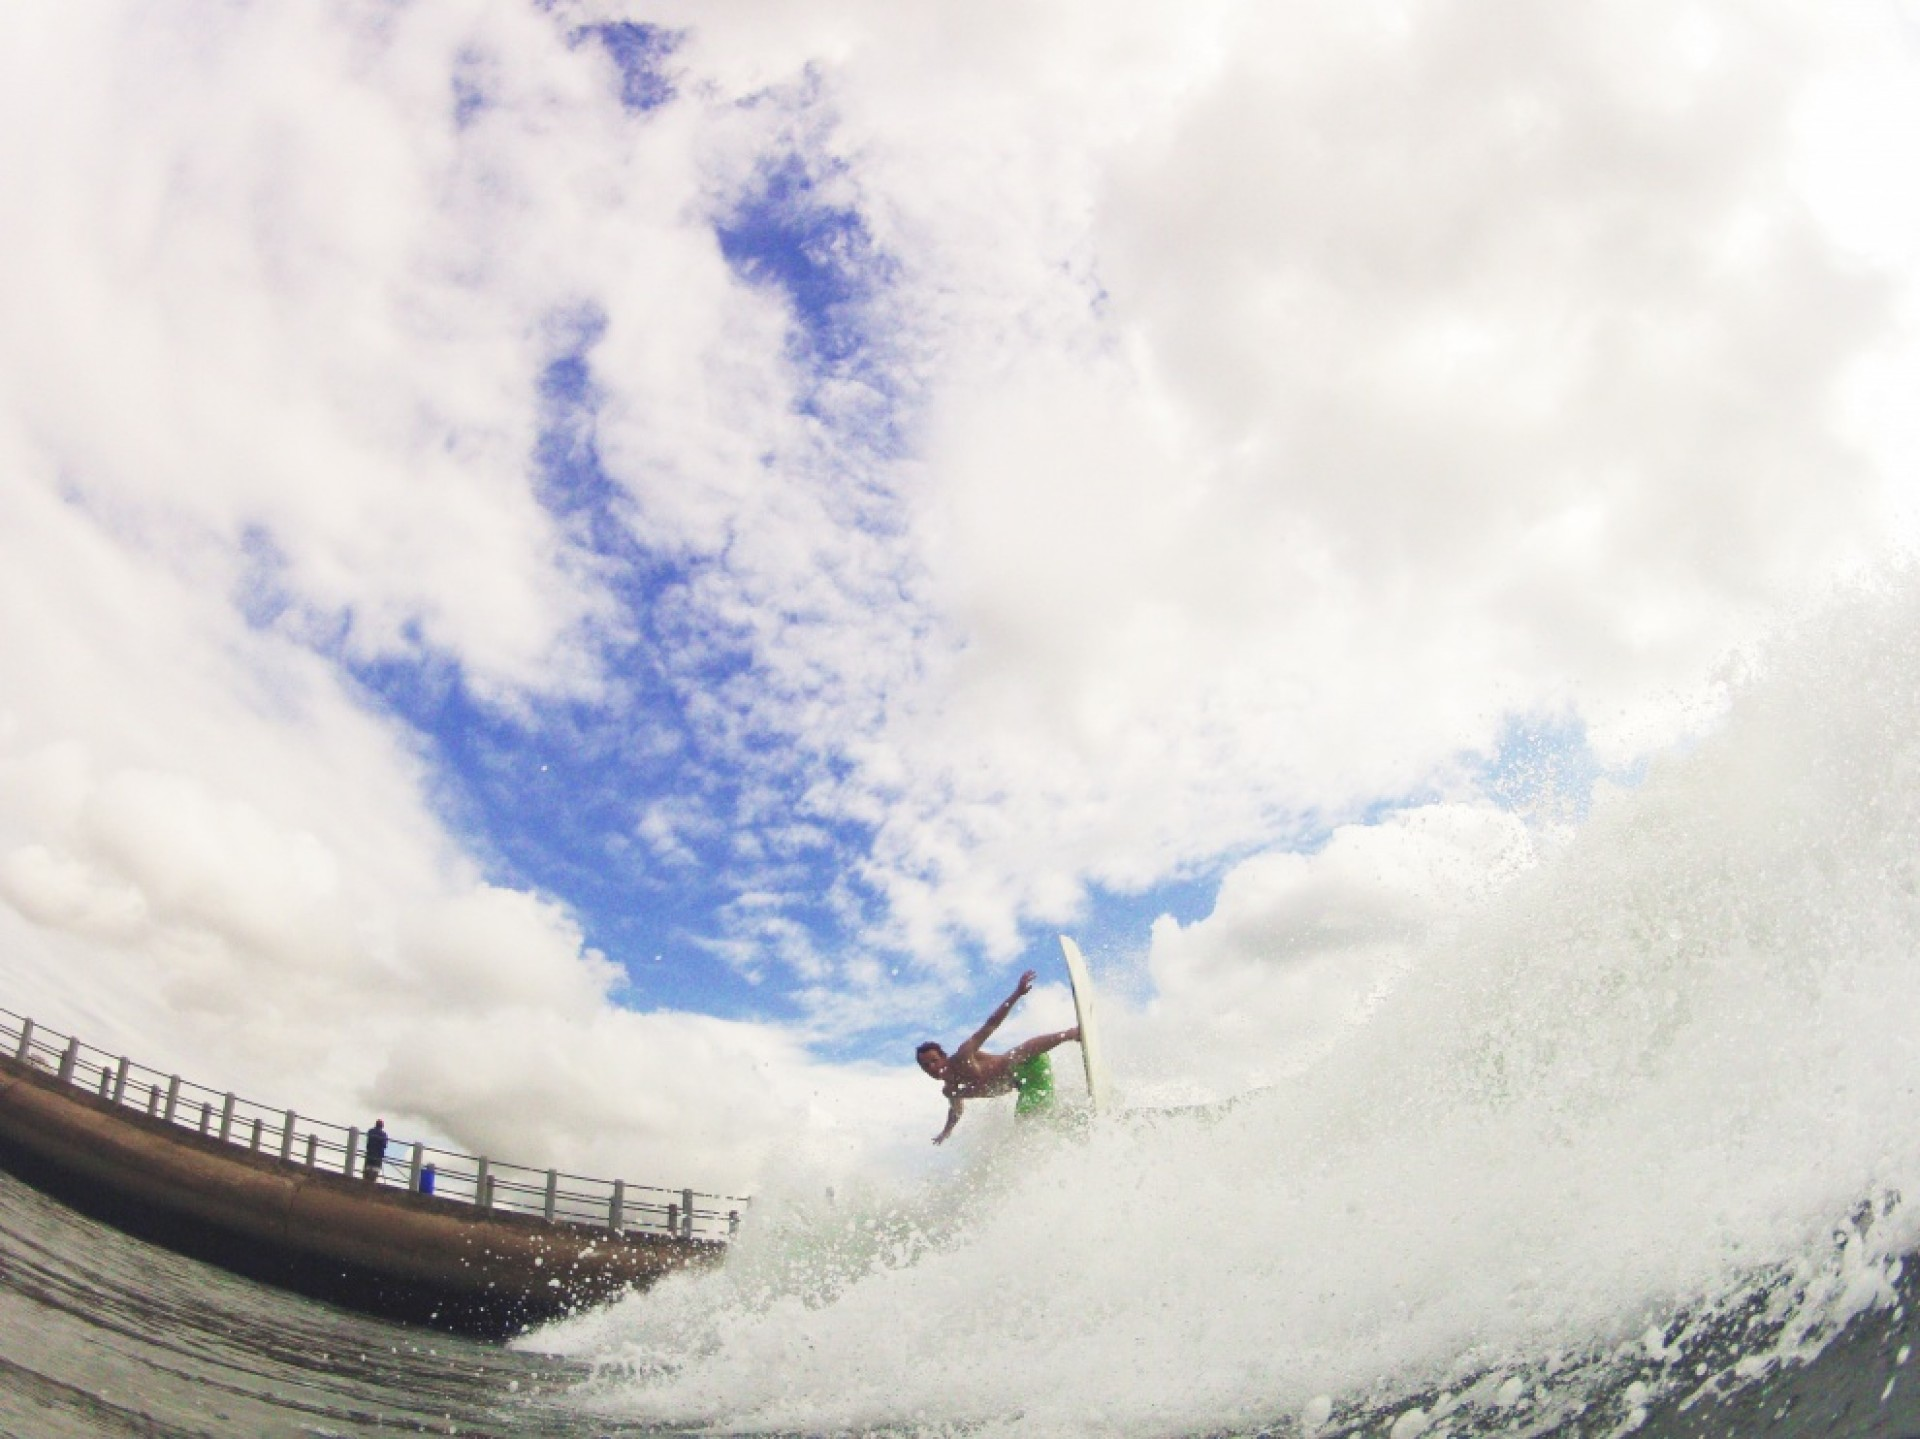 andyh's photo of Durban